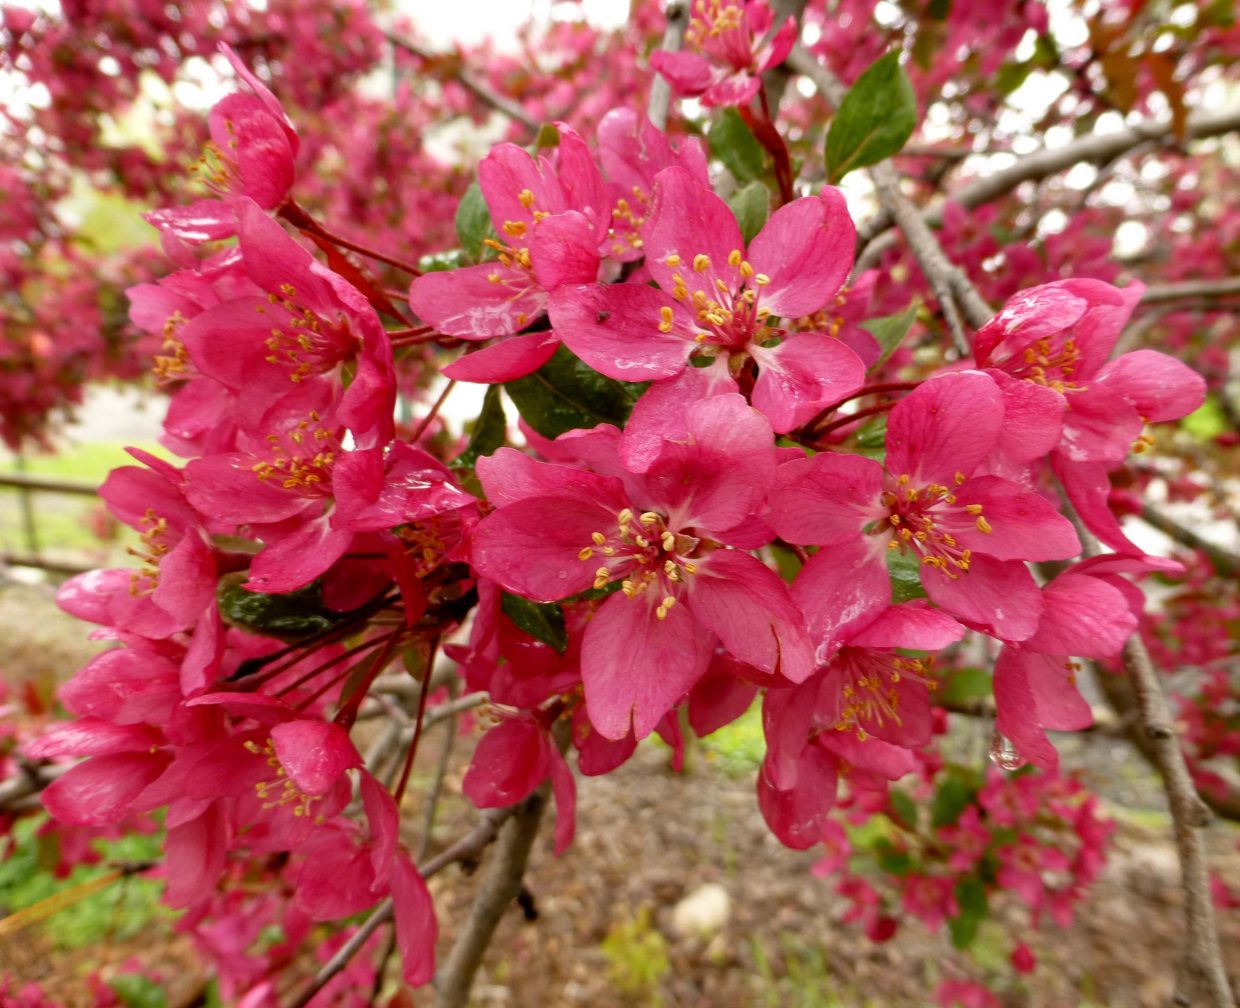 Crab apple blossoms. Submitted by Gail Hanley.